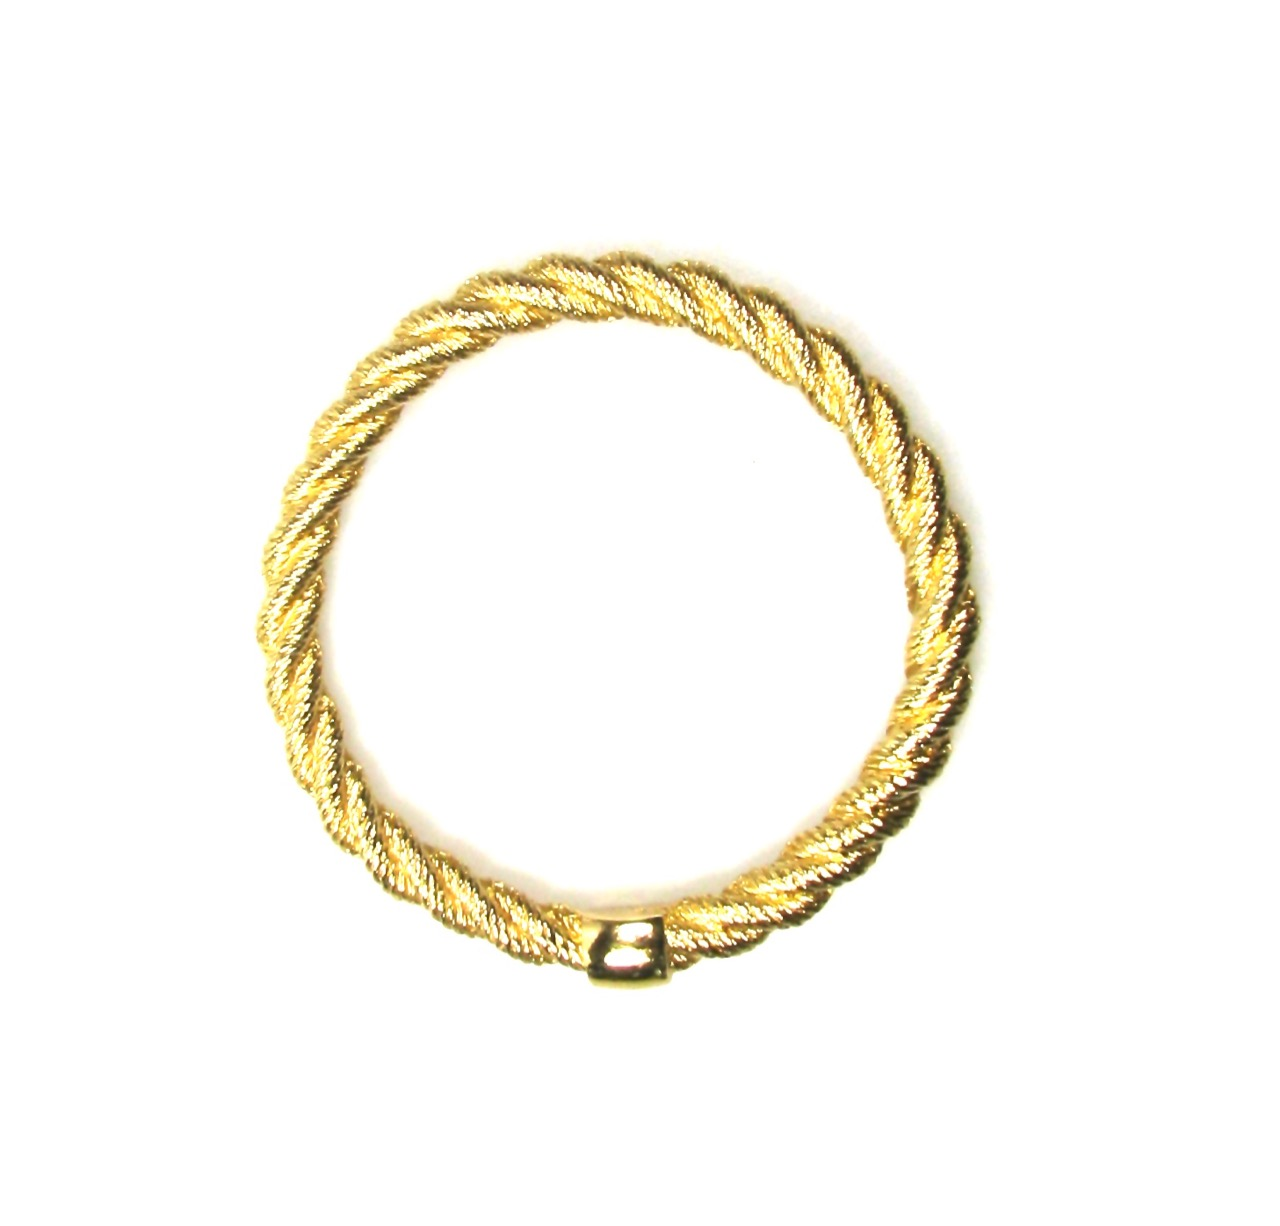 Christian Dior Rope Twist Bangle 1980s